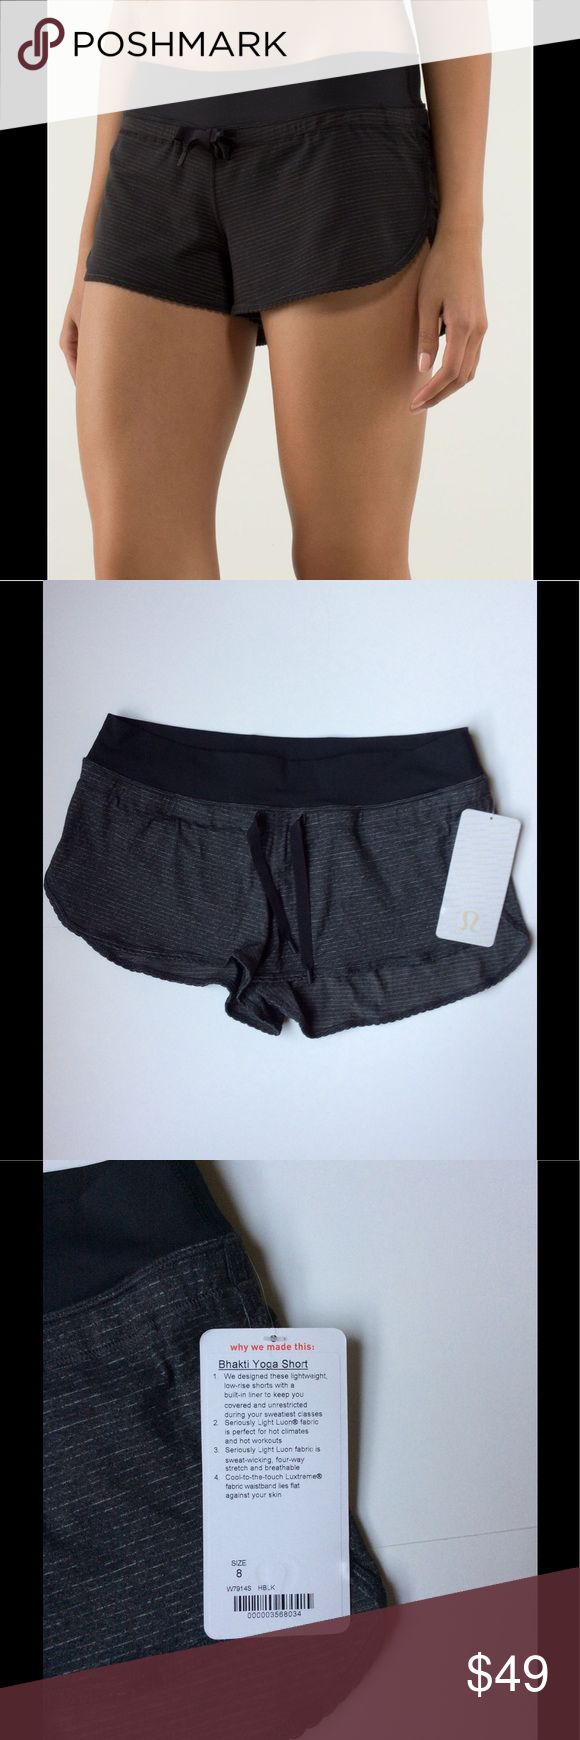 "Lululemon Bhakti Yoga Short, NWT Women's Lululemon Bhakti yoga short, NWT.  Black waistband, heathered charcoal with silver pin striping fabric.  Size 8; 15"" width, 8"" rise, 2"" inseam. lululemon athletica Shorts"